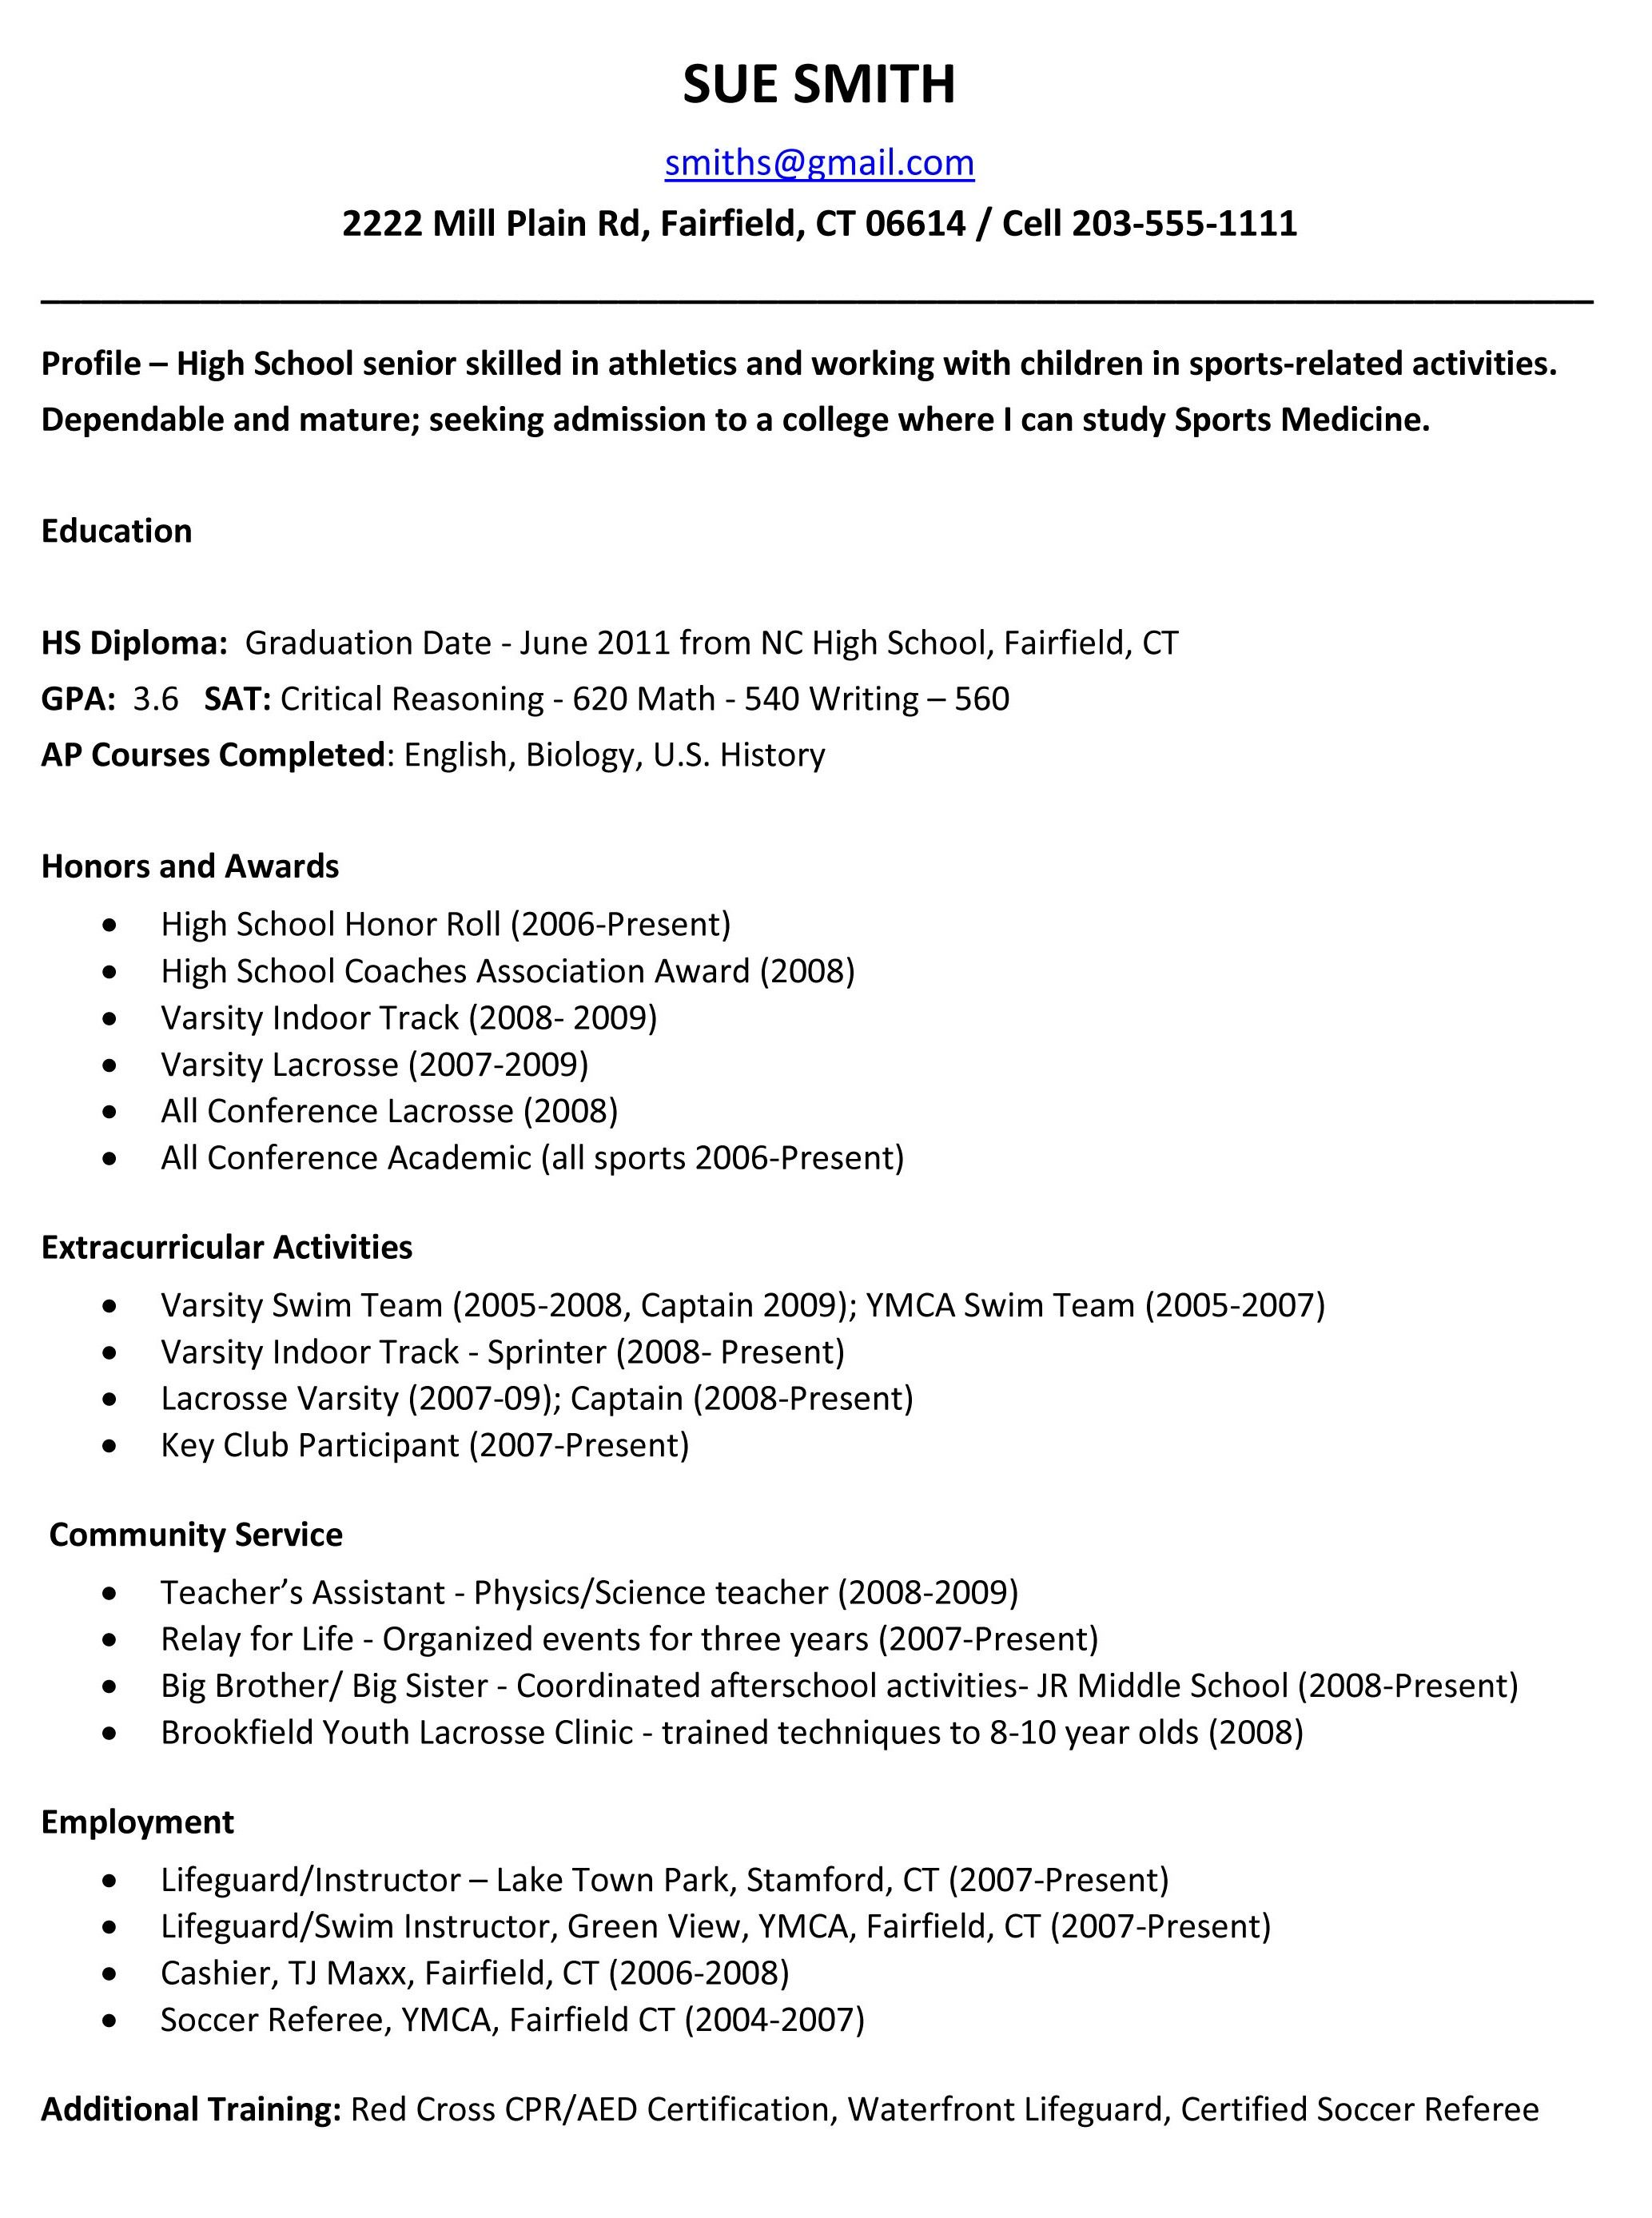 Beautiful Example Resume For High School Students For College Applications School  Resume Templateregularmidwesterners.com | Regularmidwesterners Idea Example High School Resume